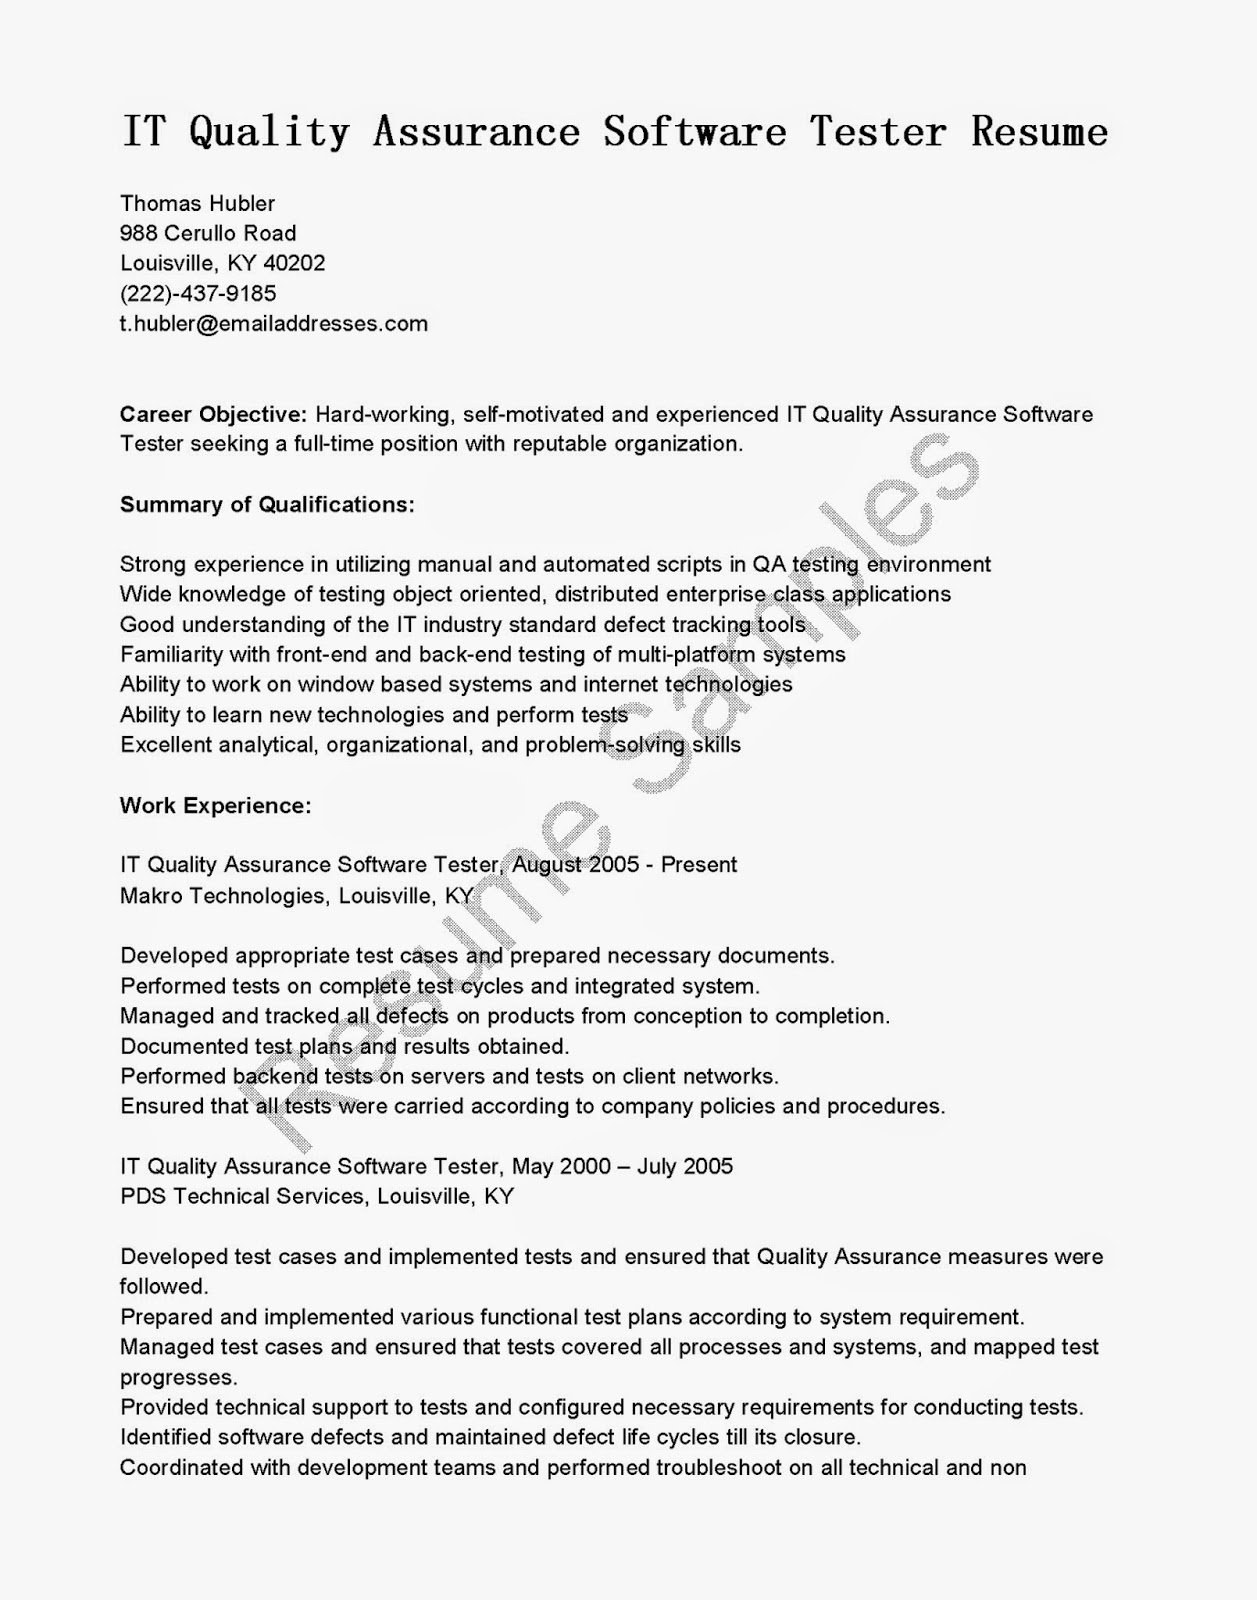 Sample Resume For Quality Assurance Executive Resume Samples It Quality Assurance Software Tester